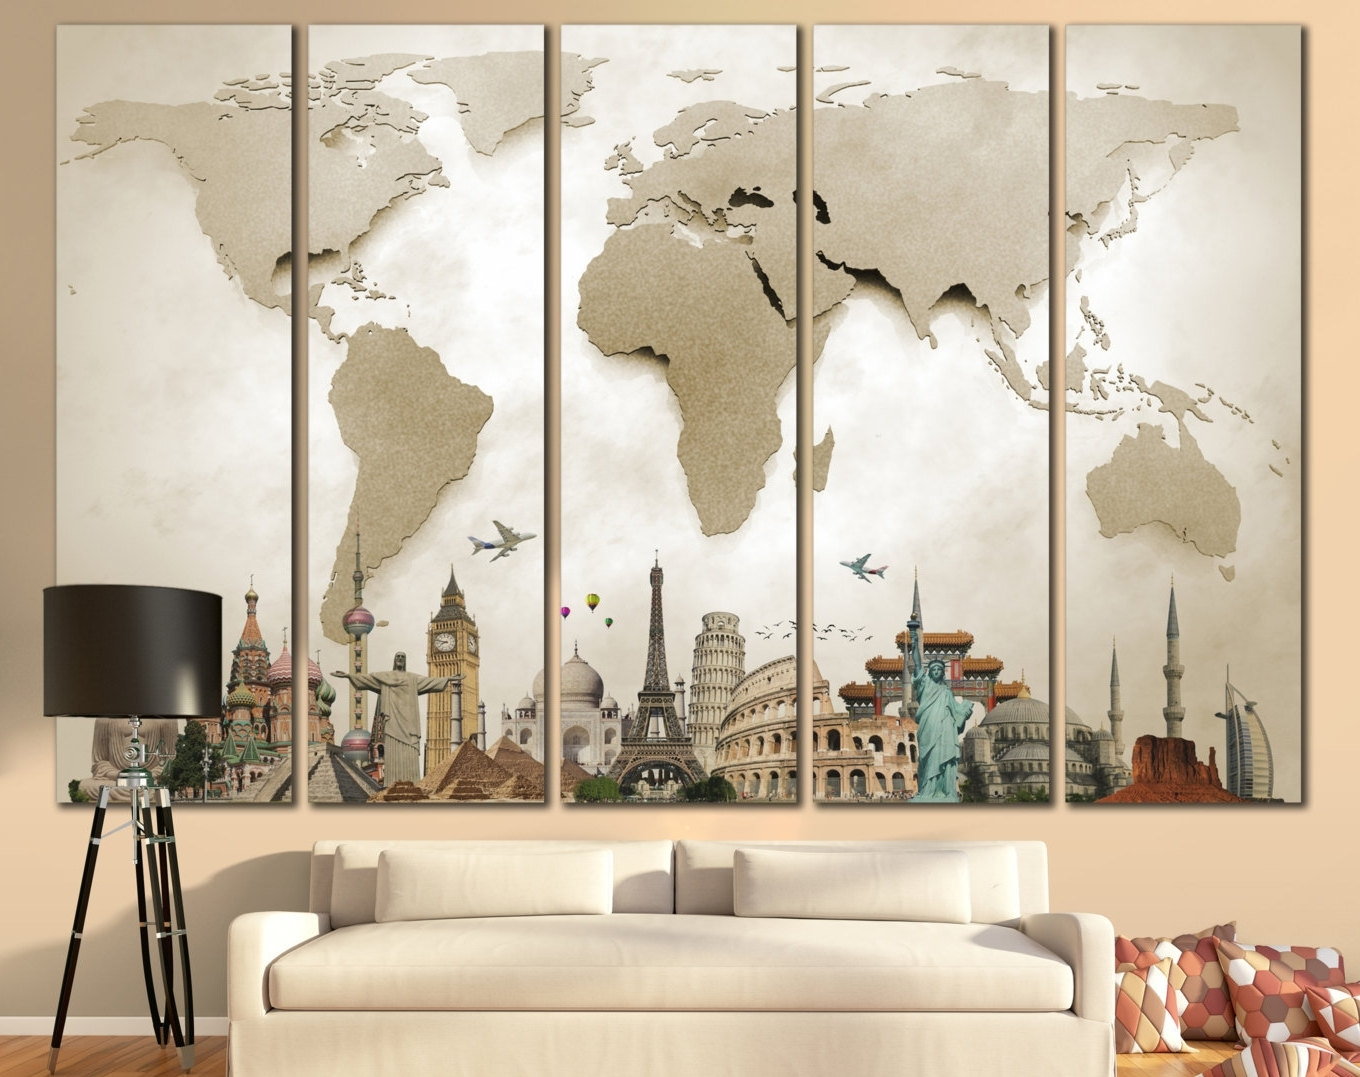 Large Wall Decor Ideas Maps : Amazing Large Wall Decor Ideas Options With Regard To 2018 Maps Wall Art (Gallery 9 of 20)